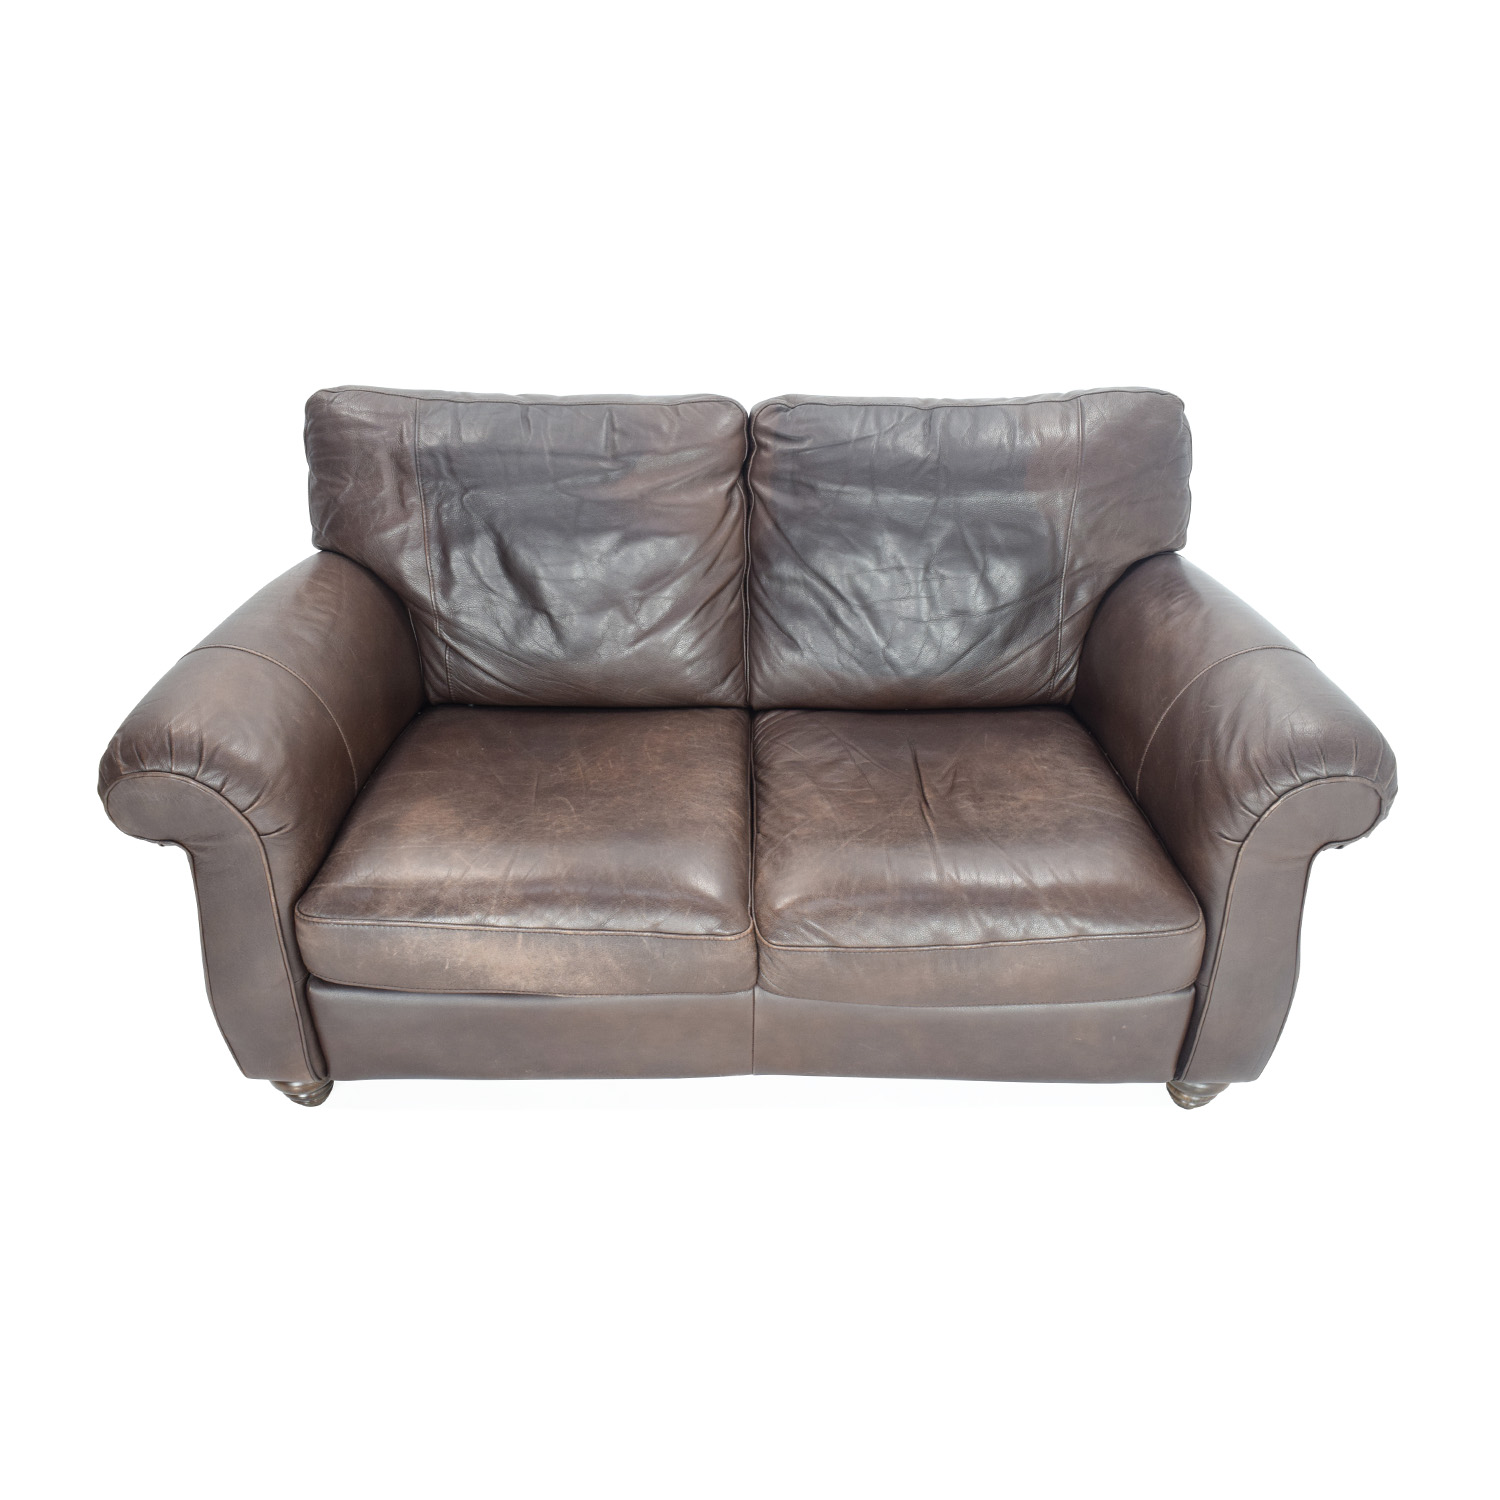 Super 81 Off Natuzzi Natuzzi Brown Leather Loveseat Sofas Dailytribune Chair Design For Home Dailytribuneorg